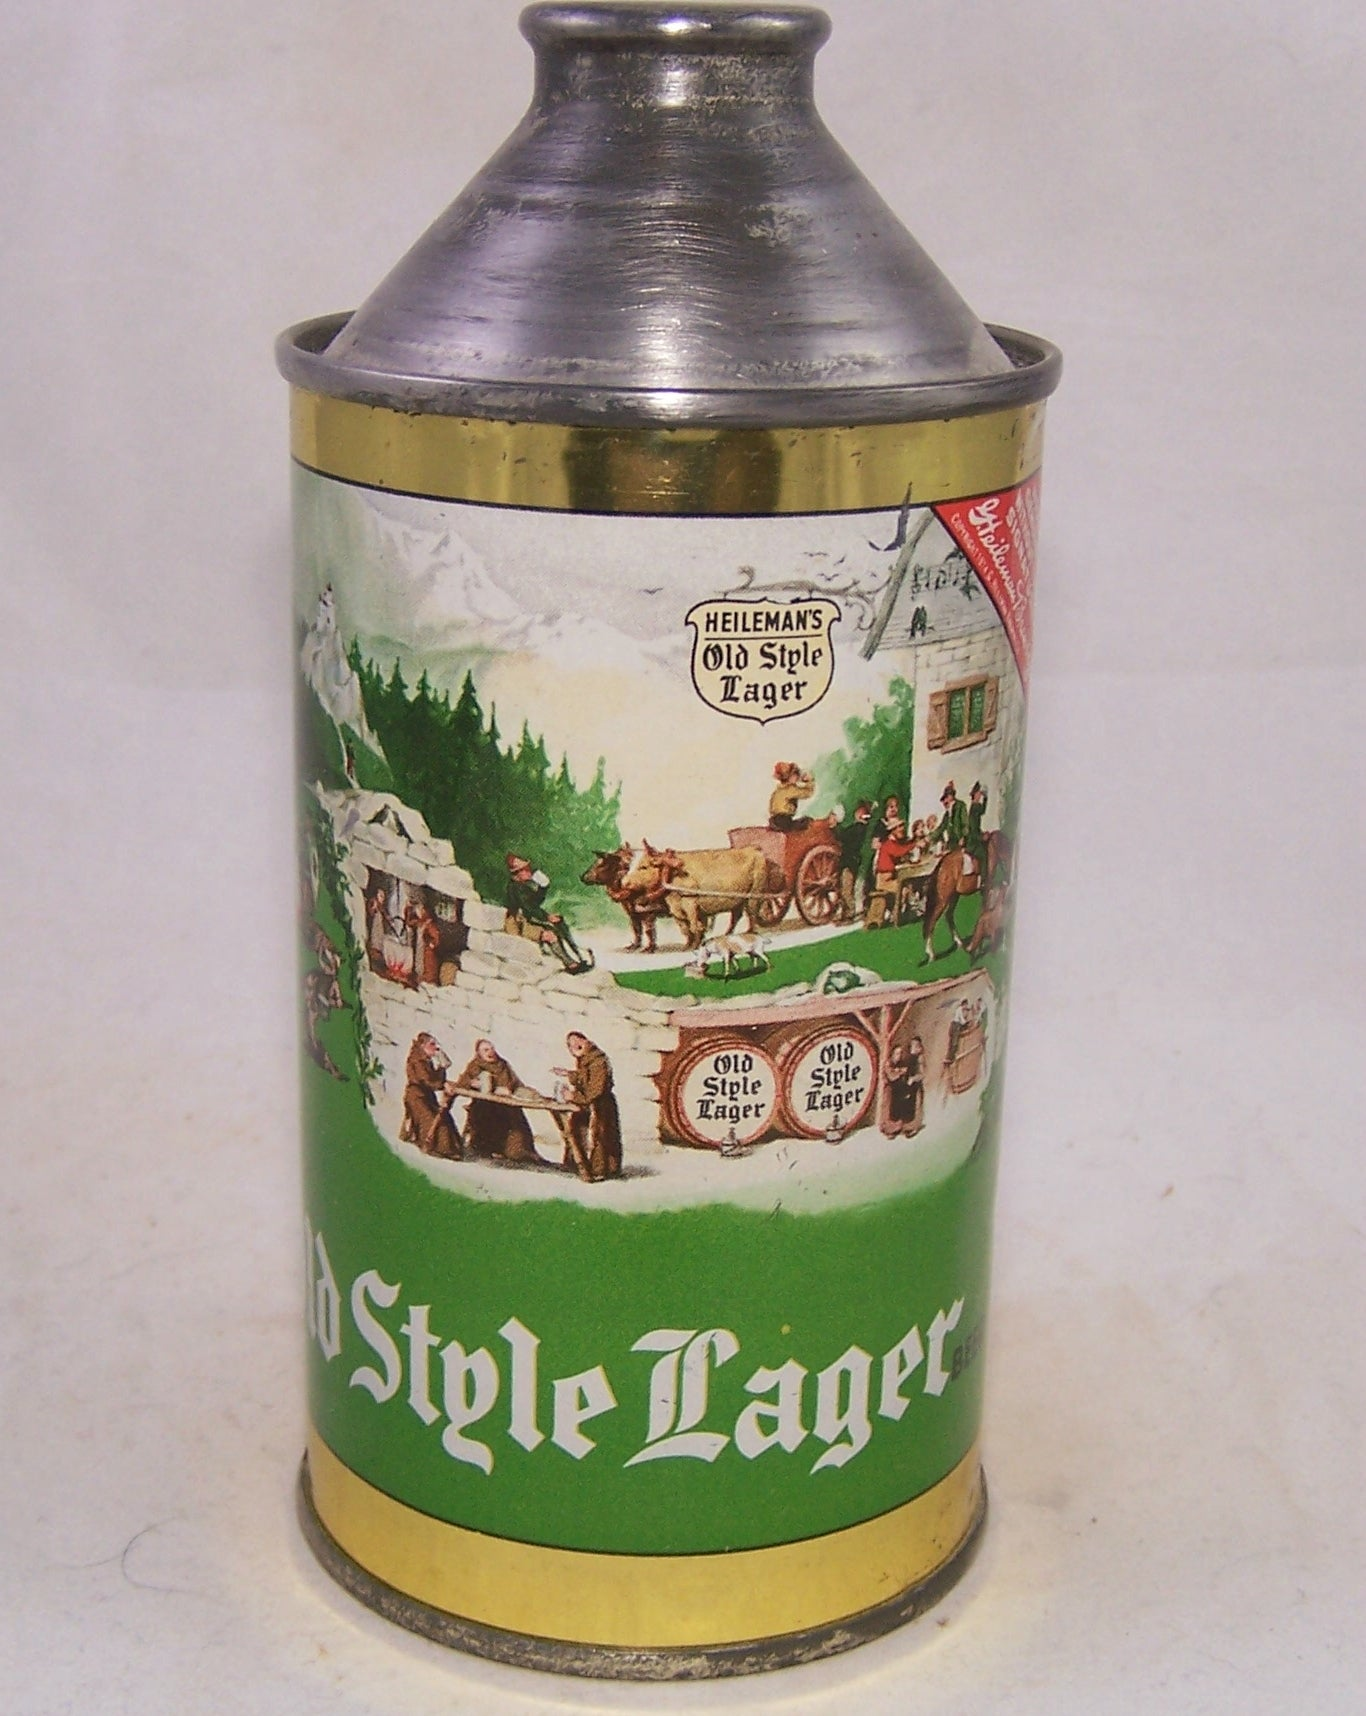 Old Style Lager Beer, USBC 177-28, Grade 1 Sold on 03/05/18